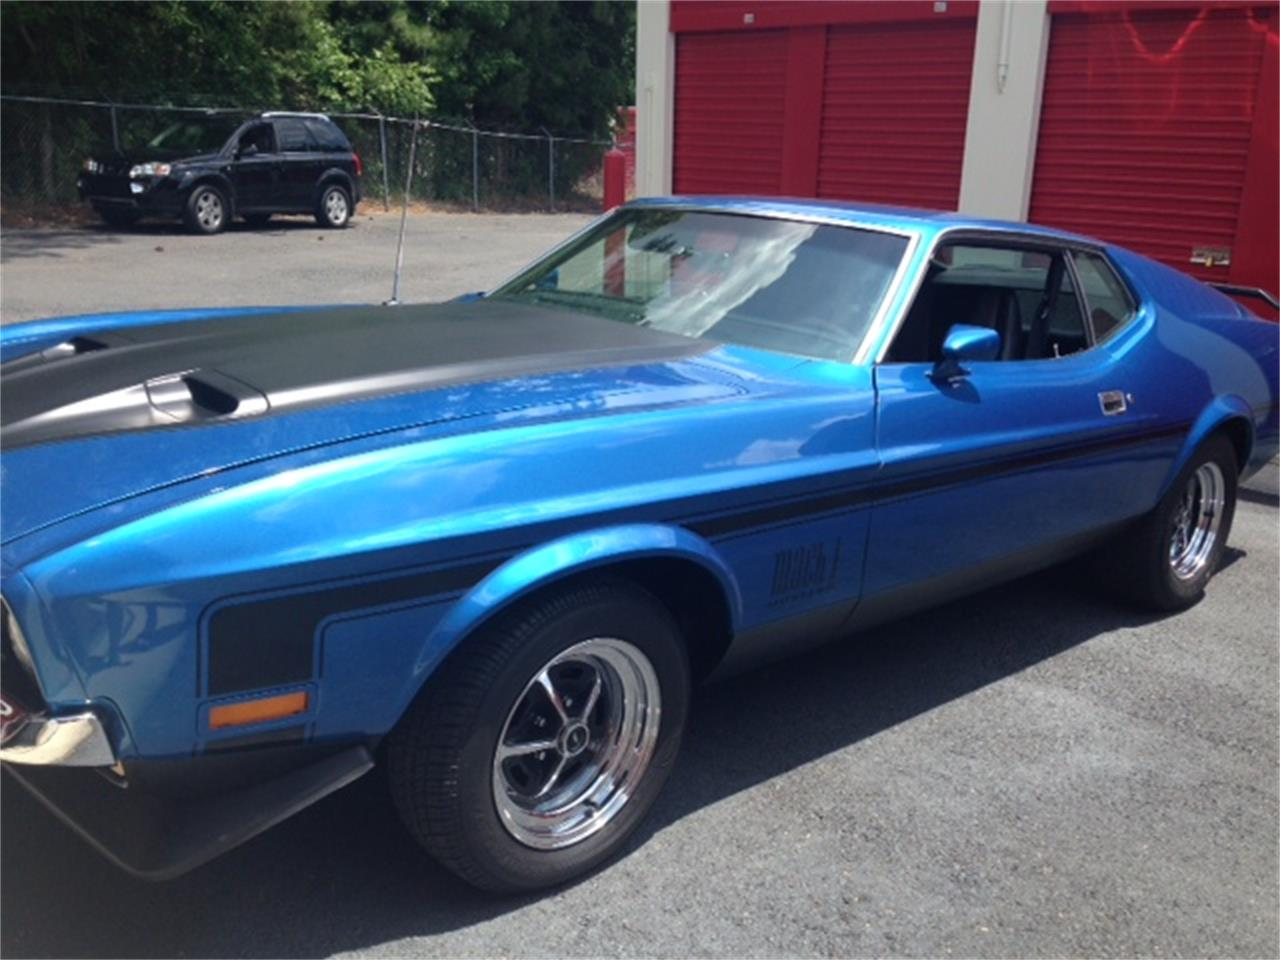 Large Picture of Classic 1972 Ford Mustang located in Huntsville Alabama - $25,500.00 Offered by a Private Seller - LFK6